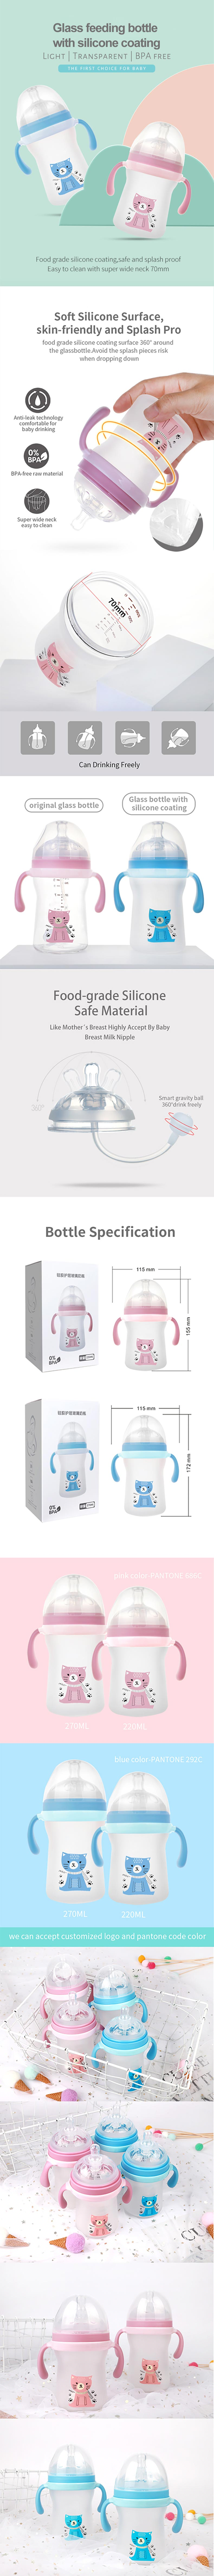 70mm-super-wide-neck-glass-feeding-bottle-with-silicone-coating-02.jpg